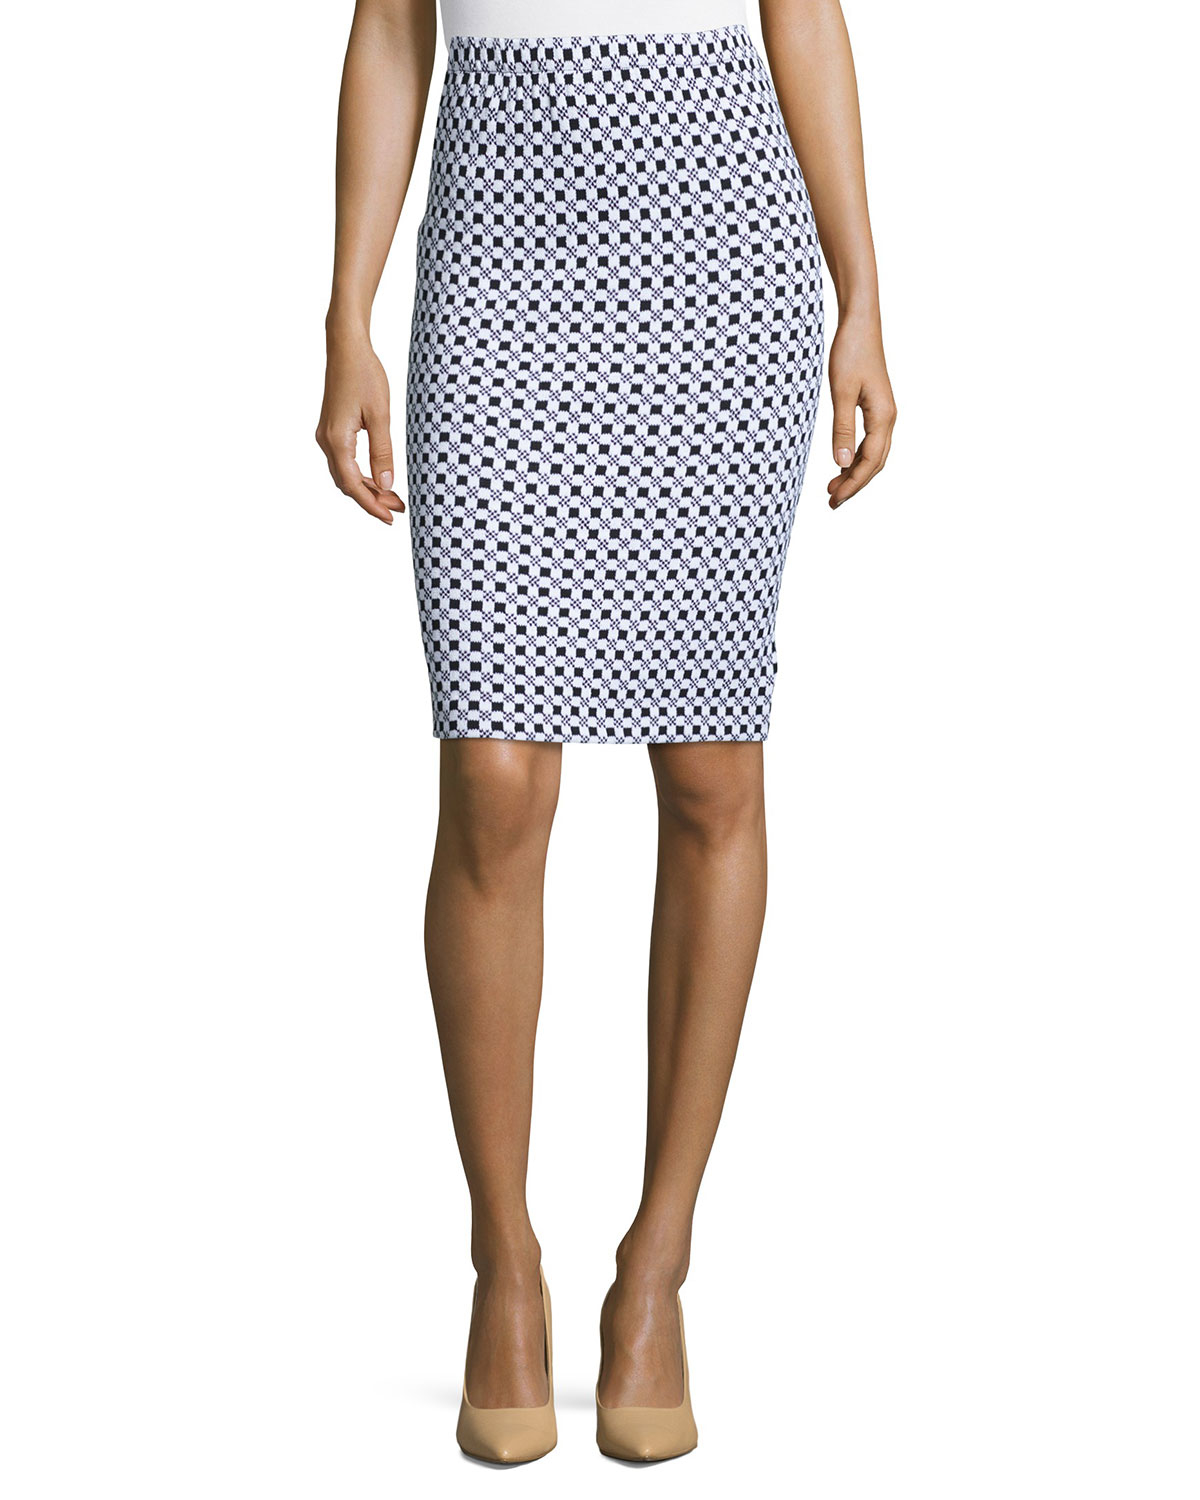 st checkered knit pencil skirt in white bkbw lyst